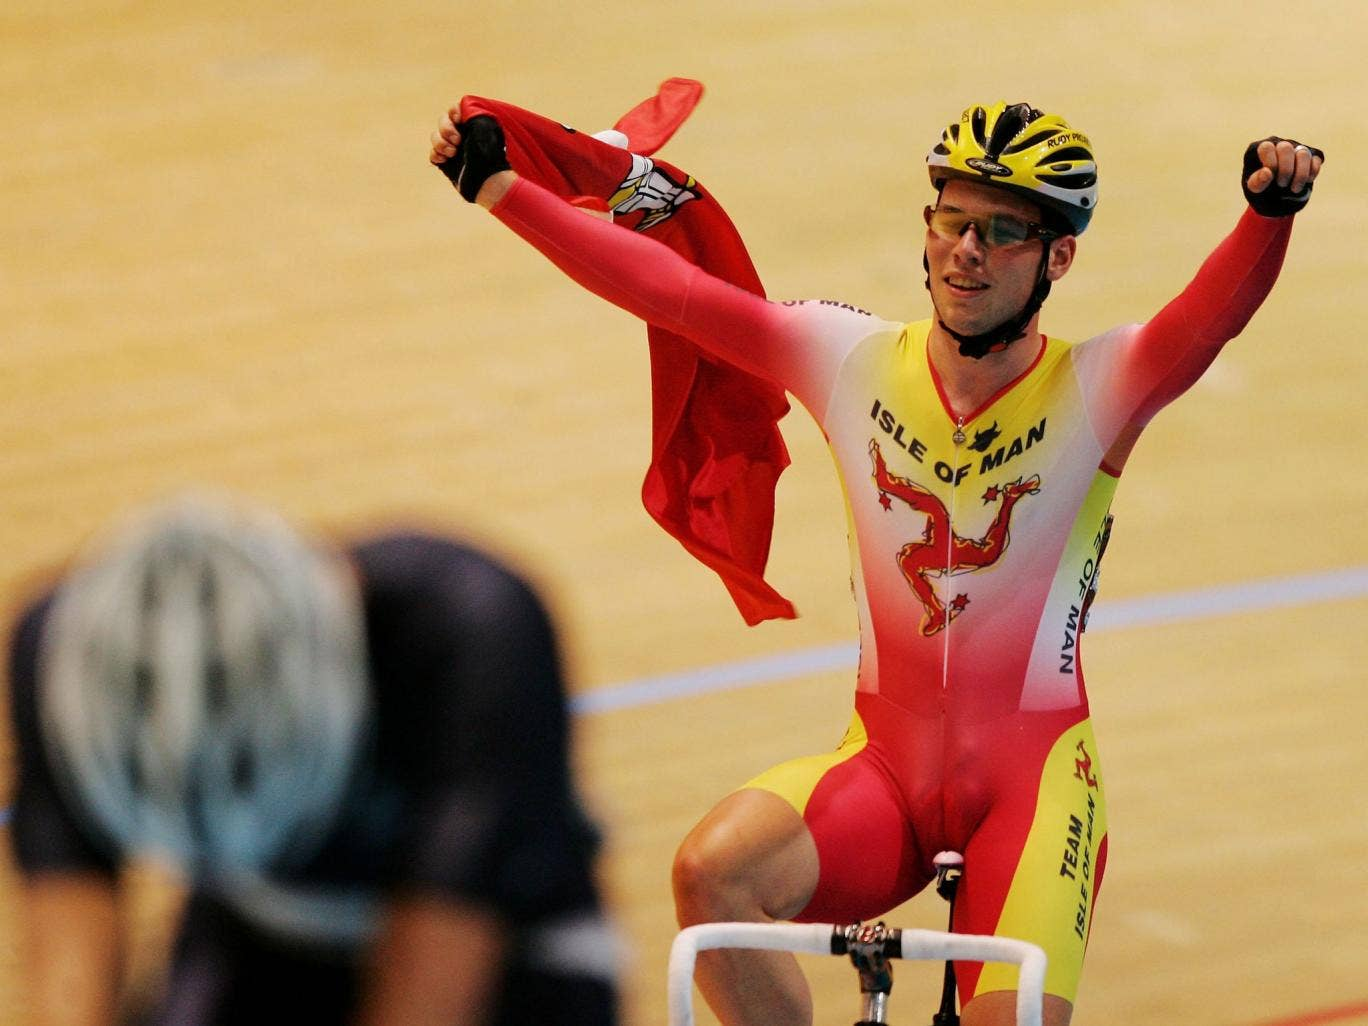 Mark Cavendish celebrates after winning gold for the Isle of Man at the 2006 Commonwealth Games in Melbourne